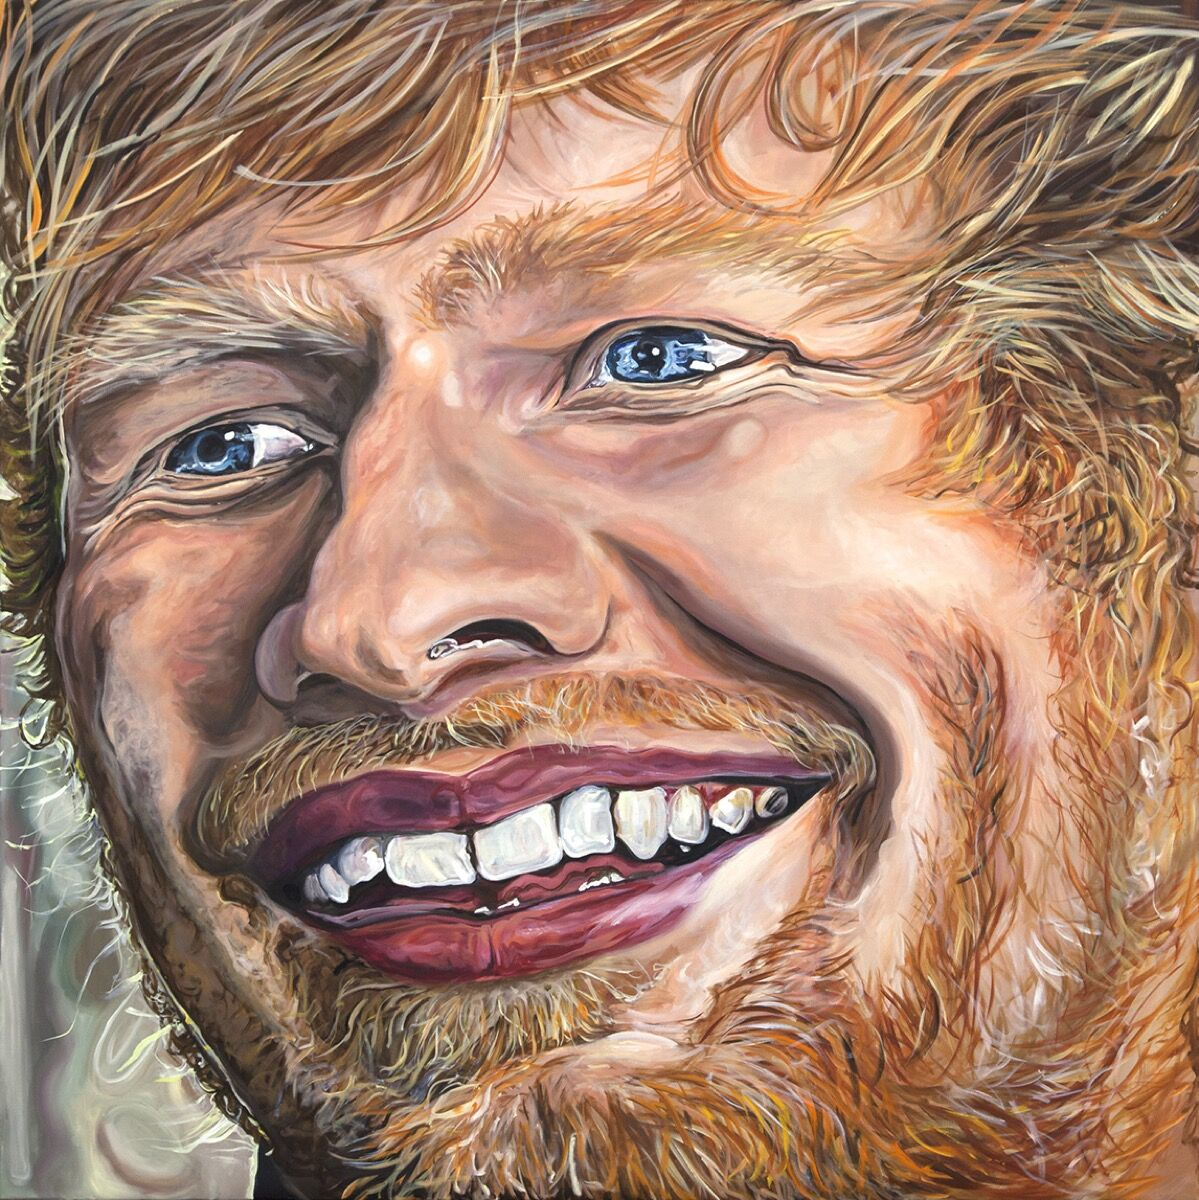 I M Obsessed With This Ed Sheeran Painting By Jana Euler Artsy